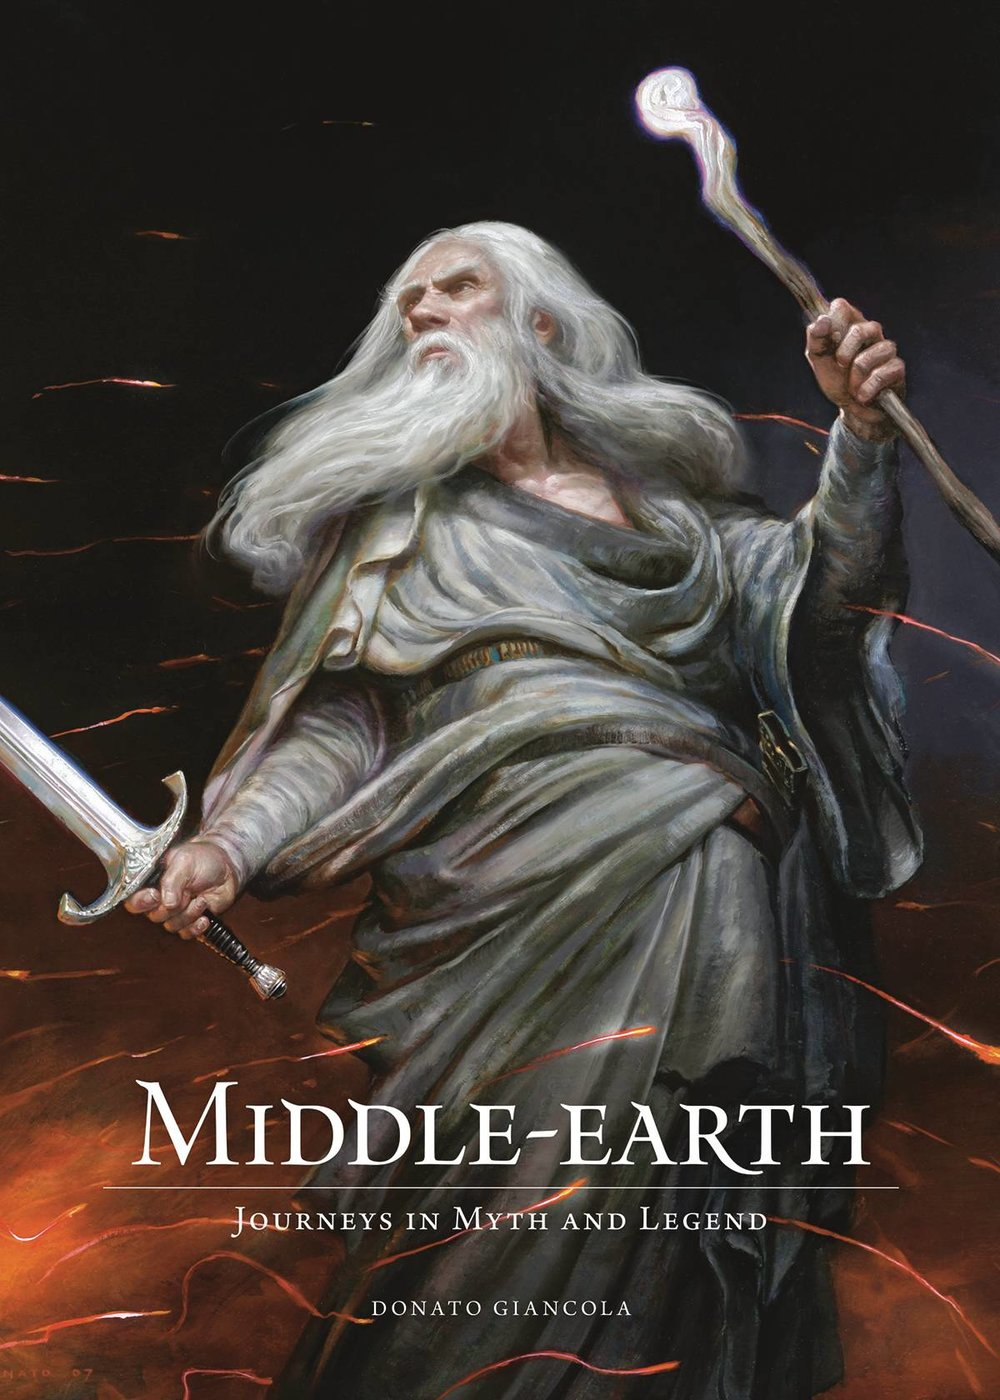 MIDDLE-EARTH HC JOURNEYS IN MYTH AND LEGEND.jpg